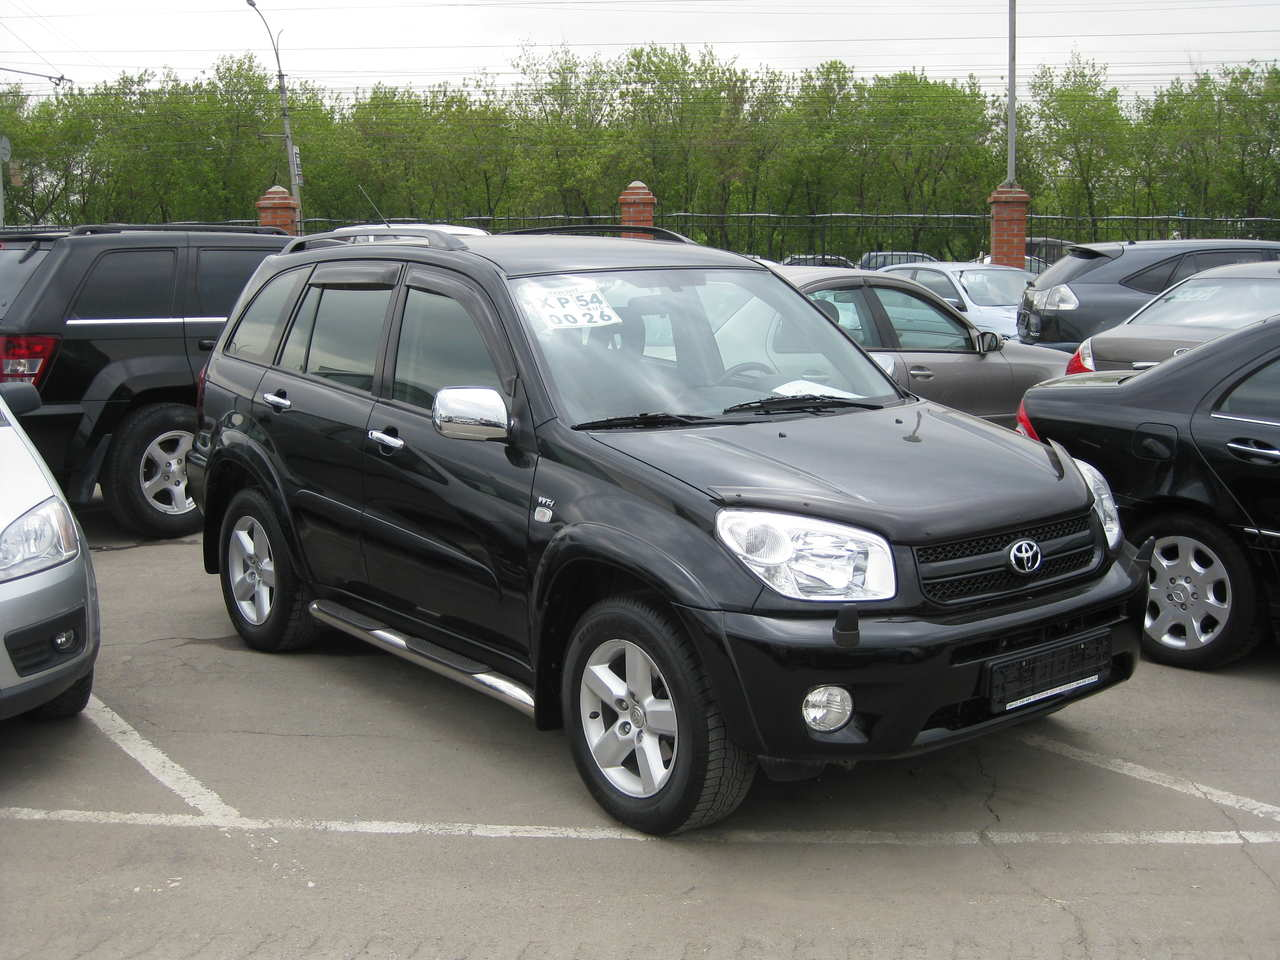 used 2005 toyota rav4 photos 2000cc gasoline automatic for sale. Black Bedroom Furniture Sets. Home Design Ideas